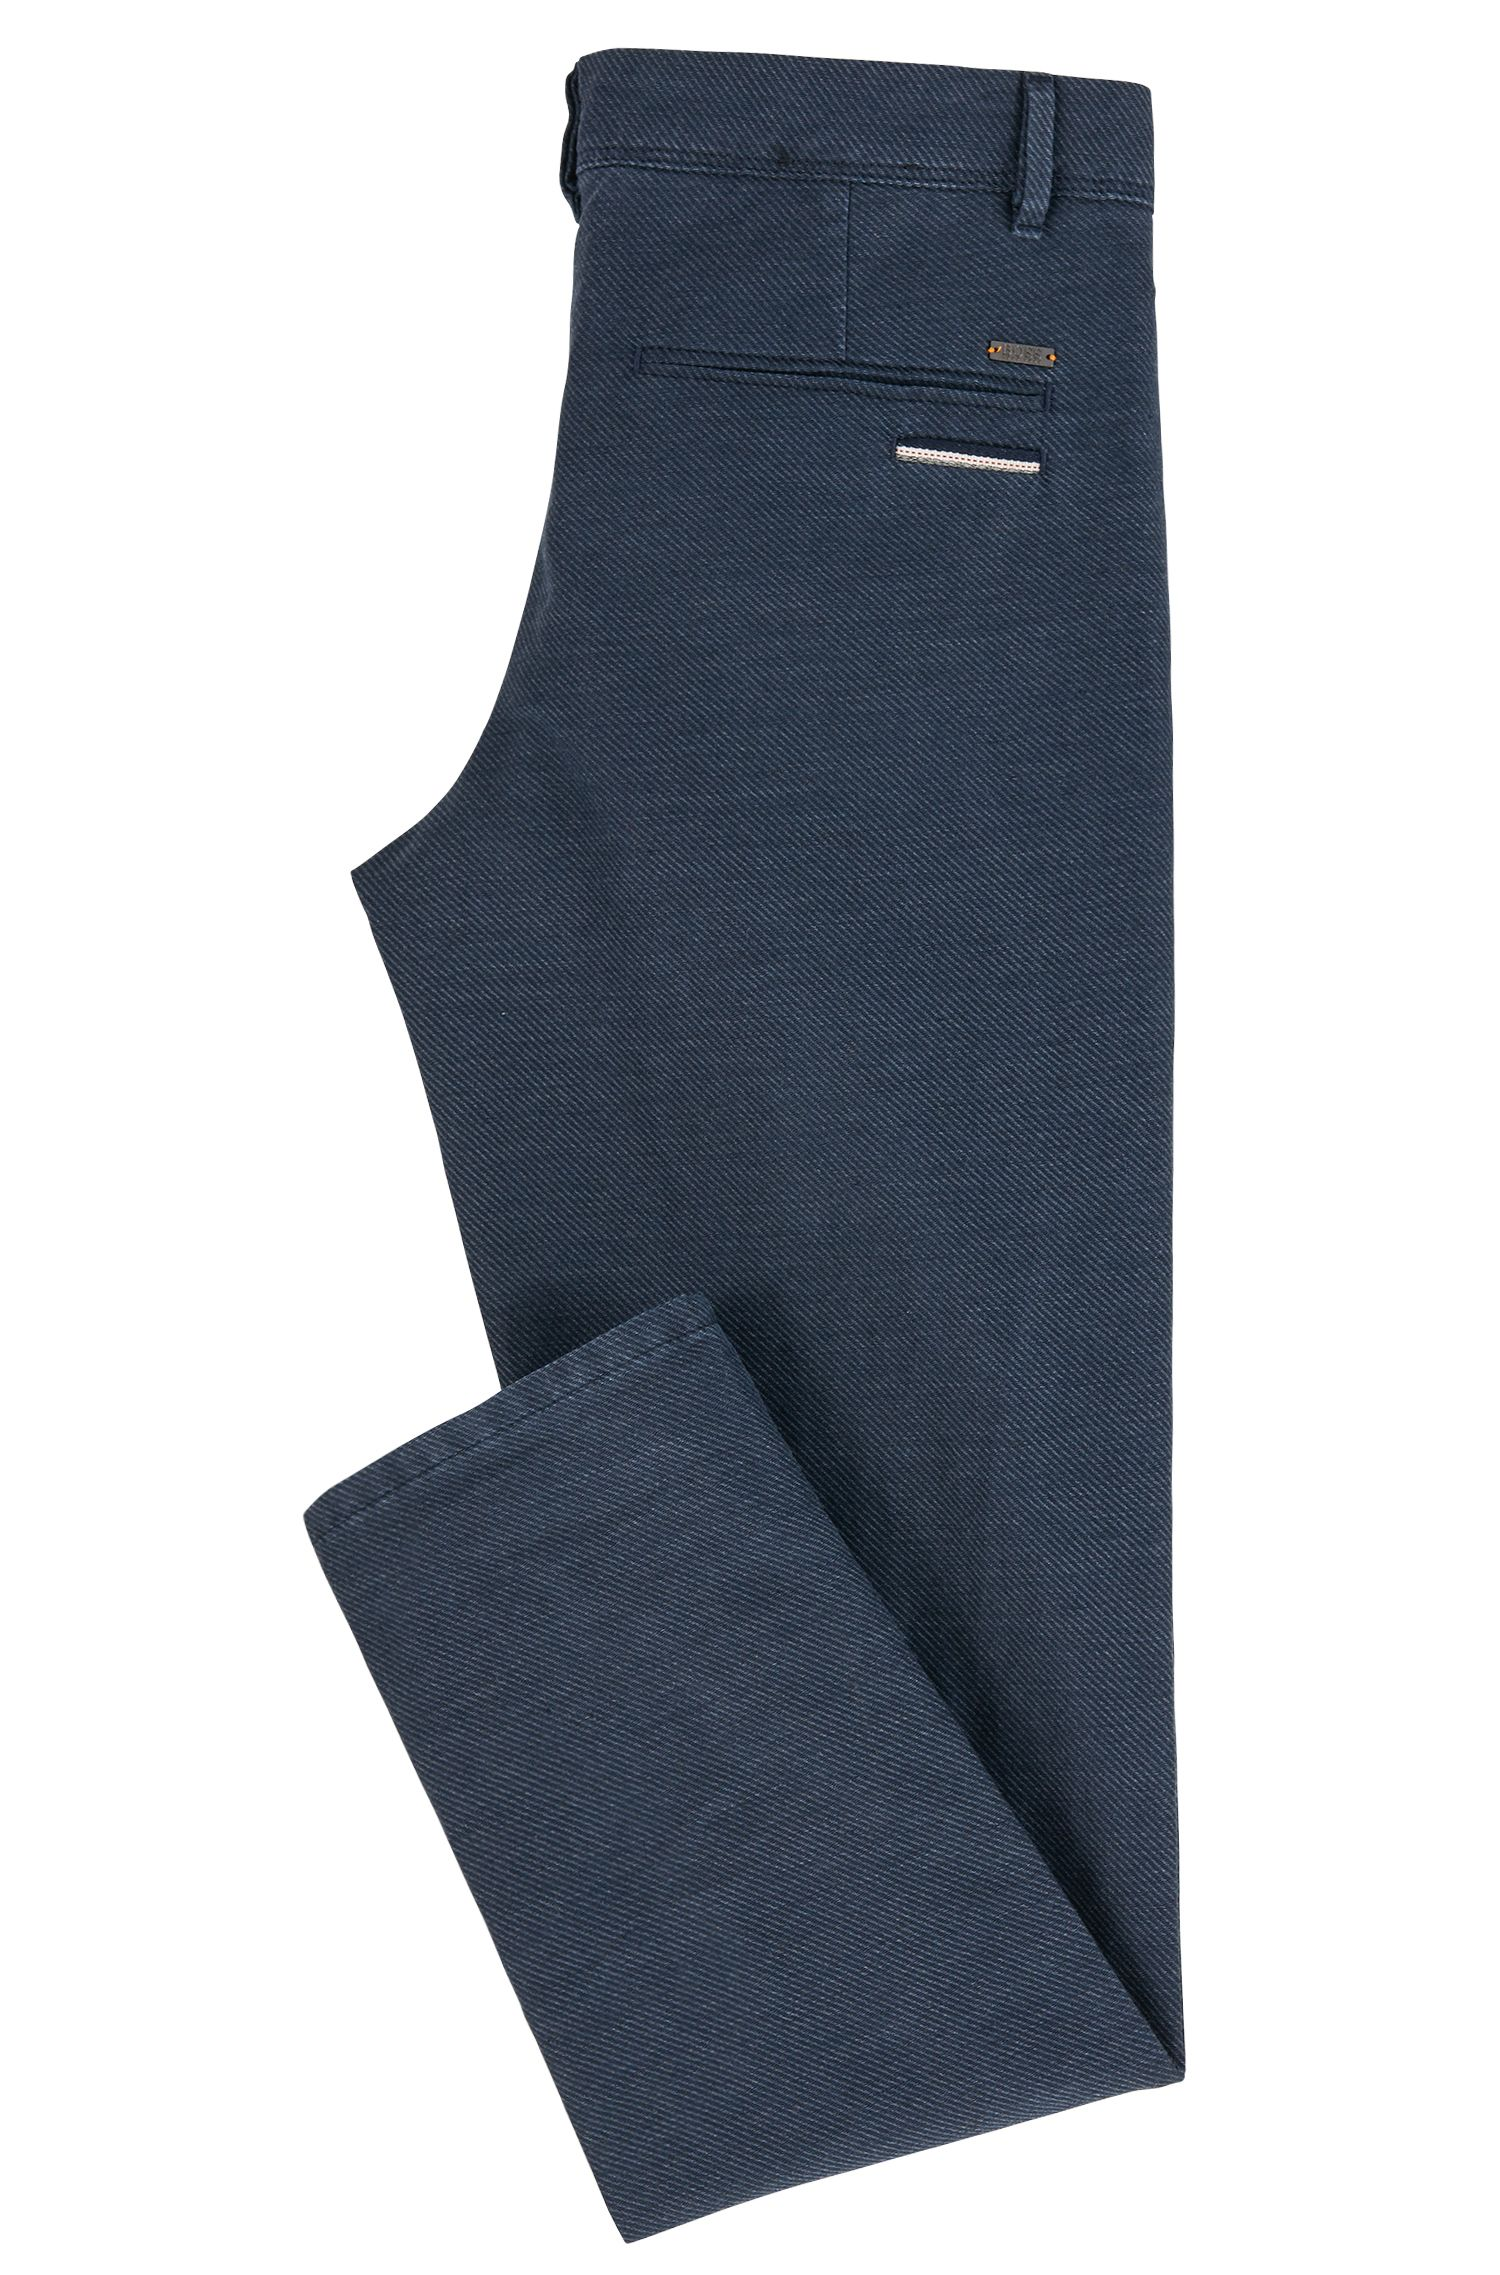 Cotton Linen Blend Pant, Tapered Fit | Stapered W